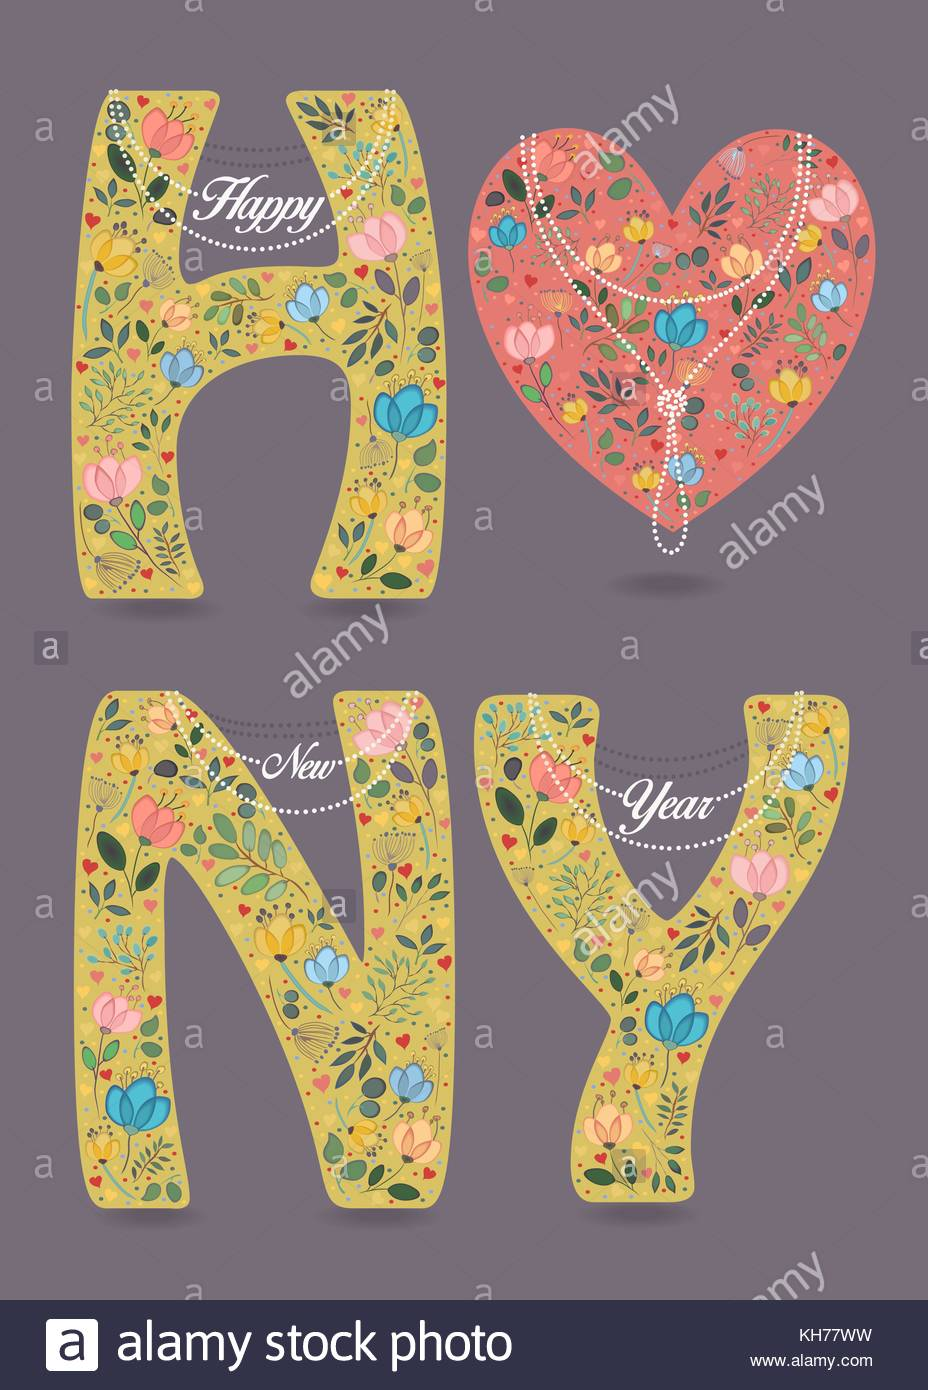 Happy new year pink big heart and yellow letters with floral pink big heart and yellow letters with floral decor white pearl collars and texts as pendats watercolor colorful flowers plants and buycottarizona Image collections